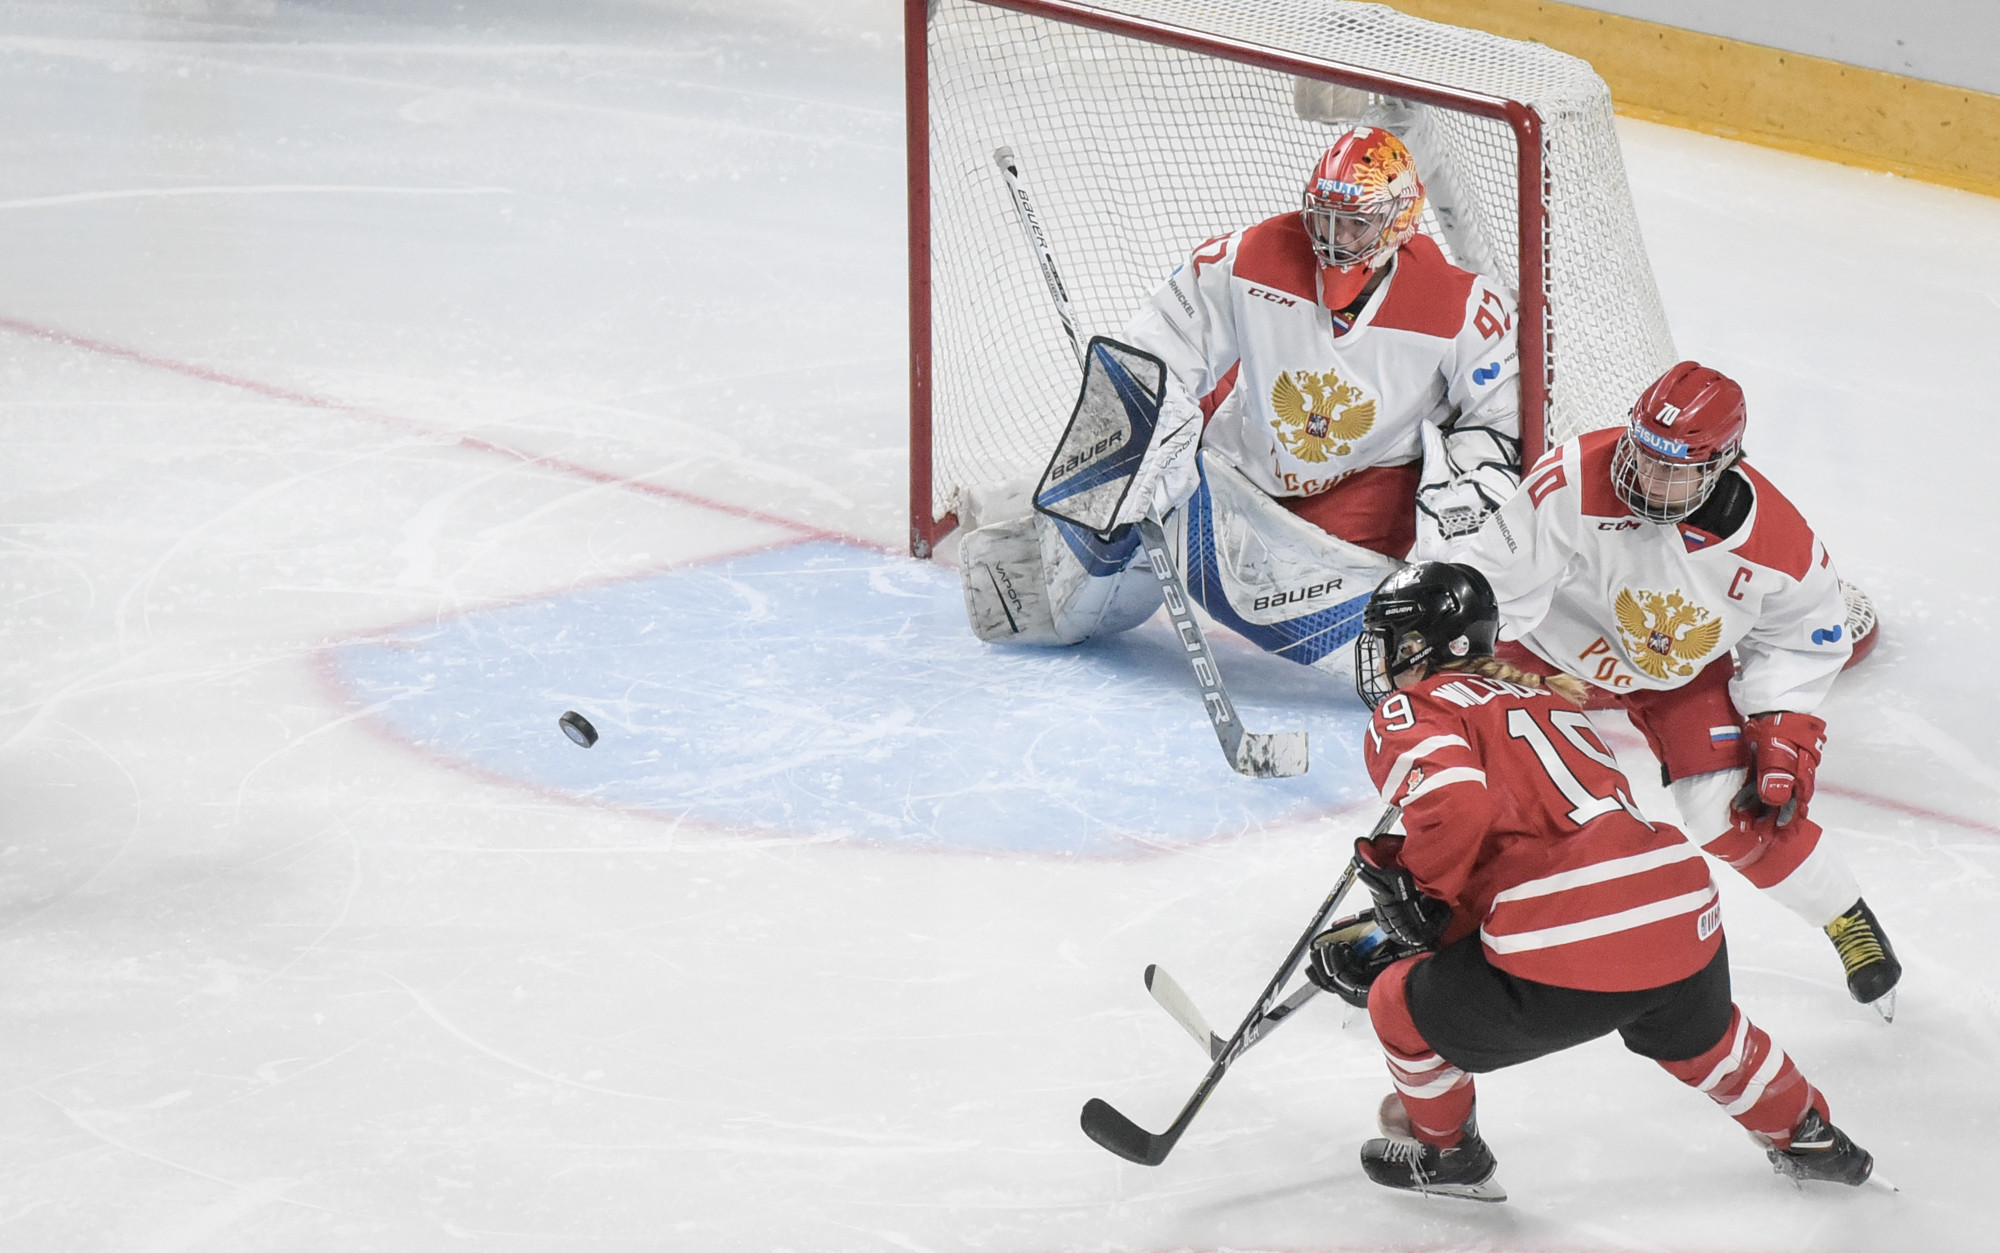 Russia delight home crowd with ice hockey gold at Krasnoyarsk 2019